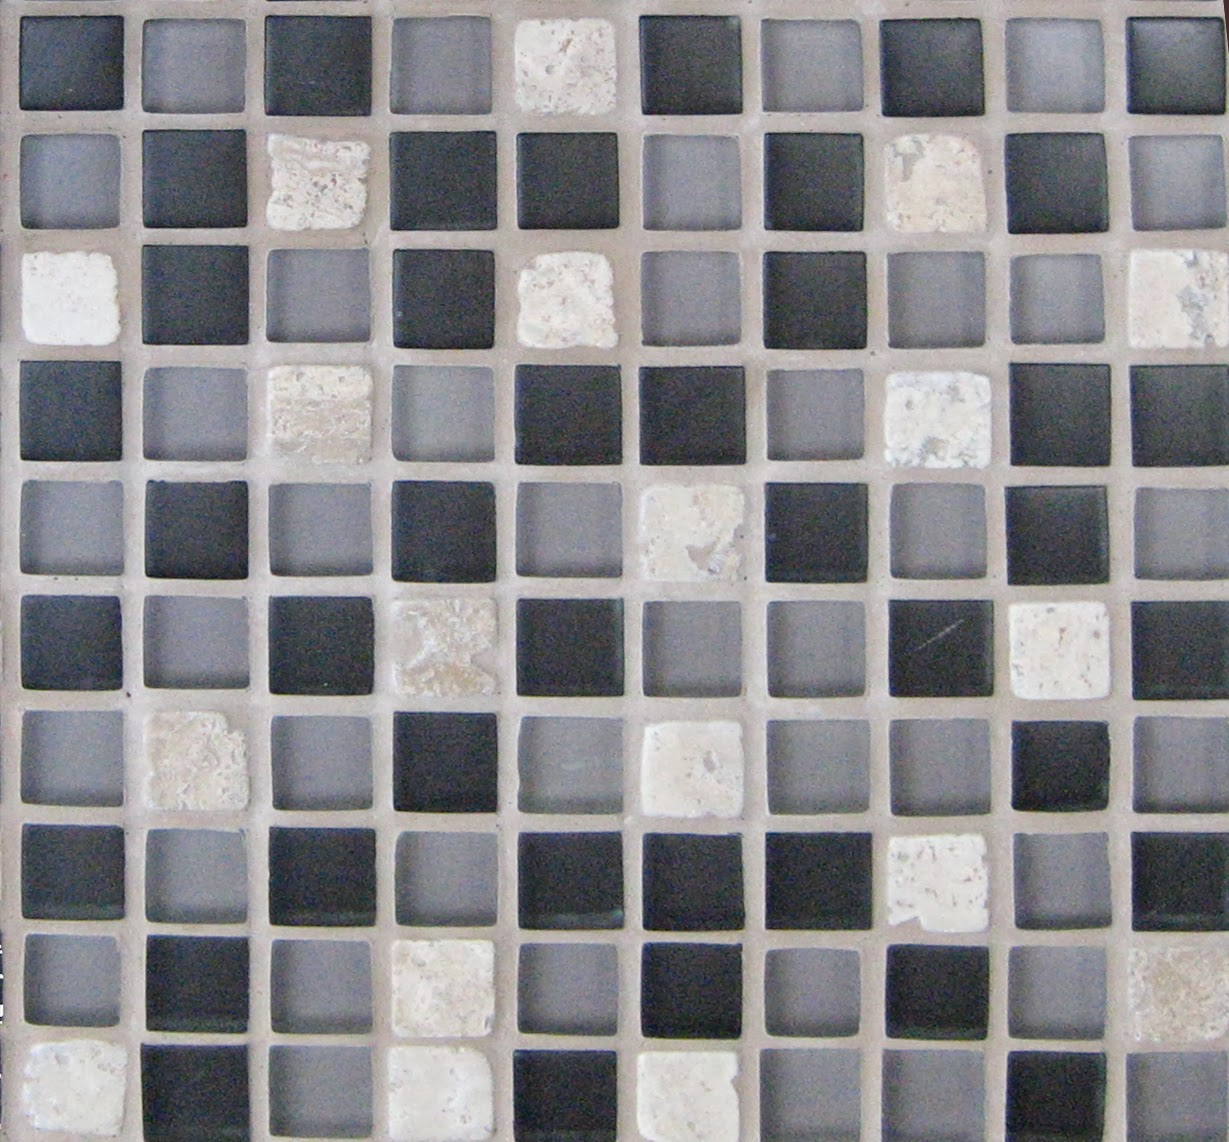 Bathroom tiles texture - Small Bathroom Flooring Largeformat Tiles Daltile